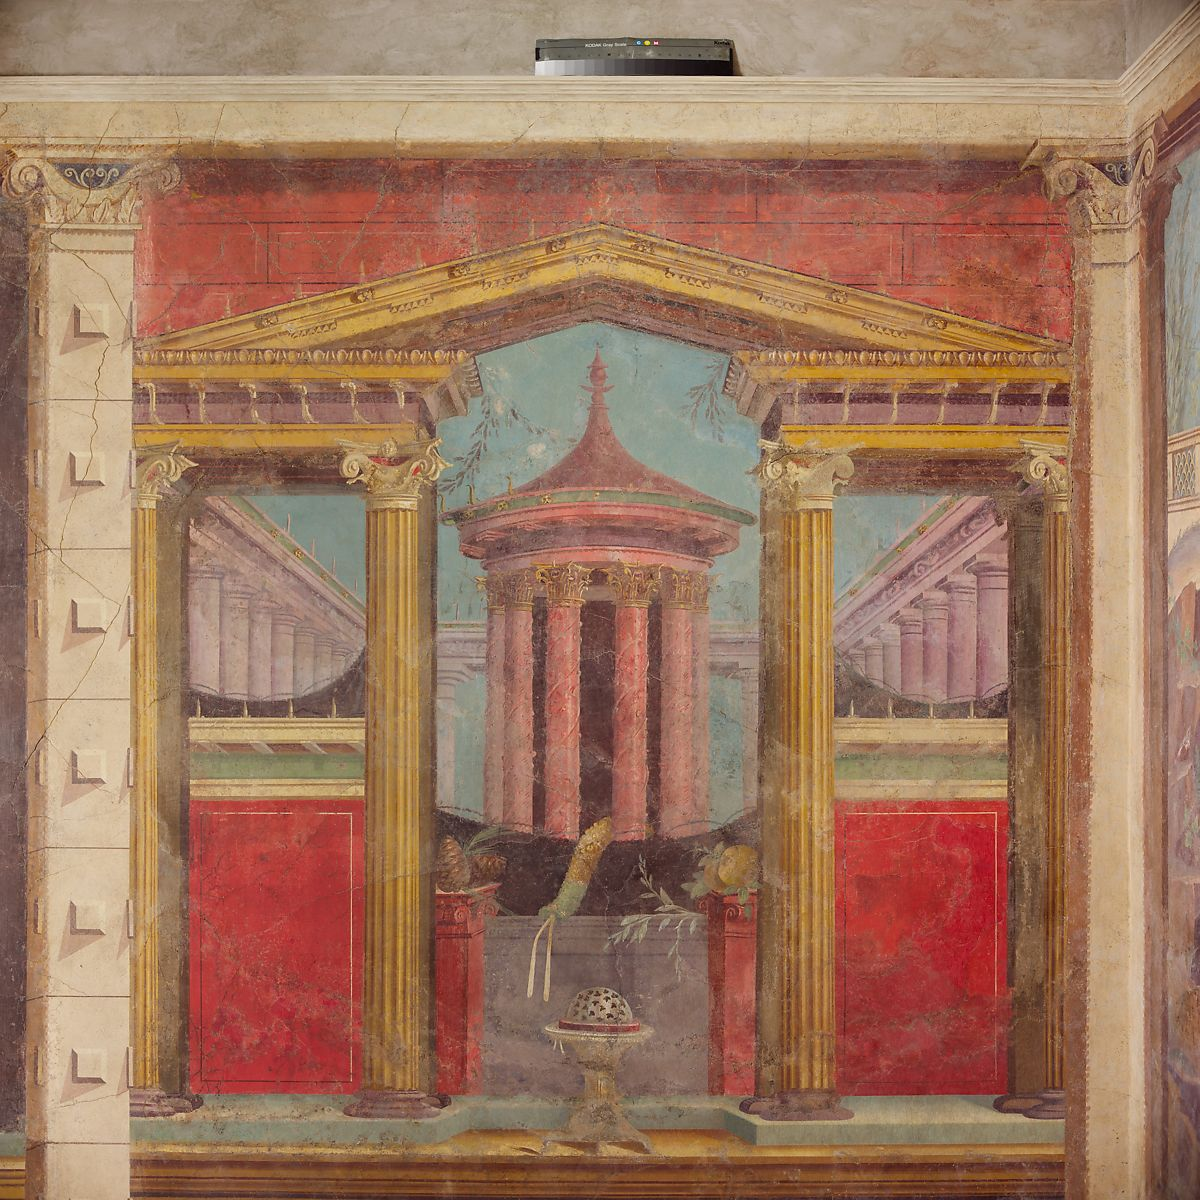 Cubiculum (bedroom) from the Villa of P. Fannius Synistor at Boscoreale, Fresco, Roman